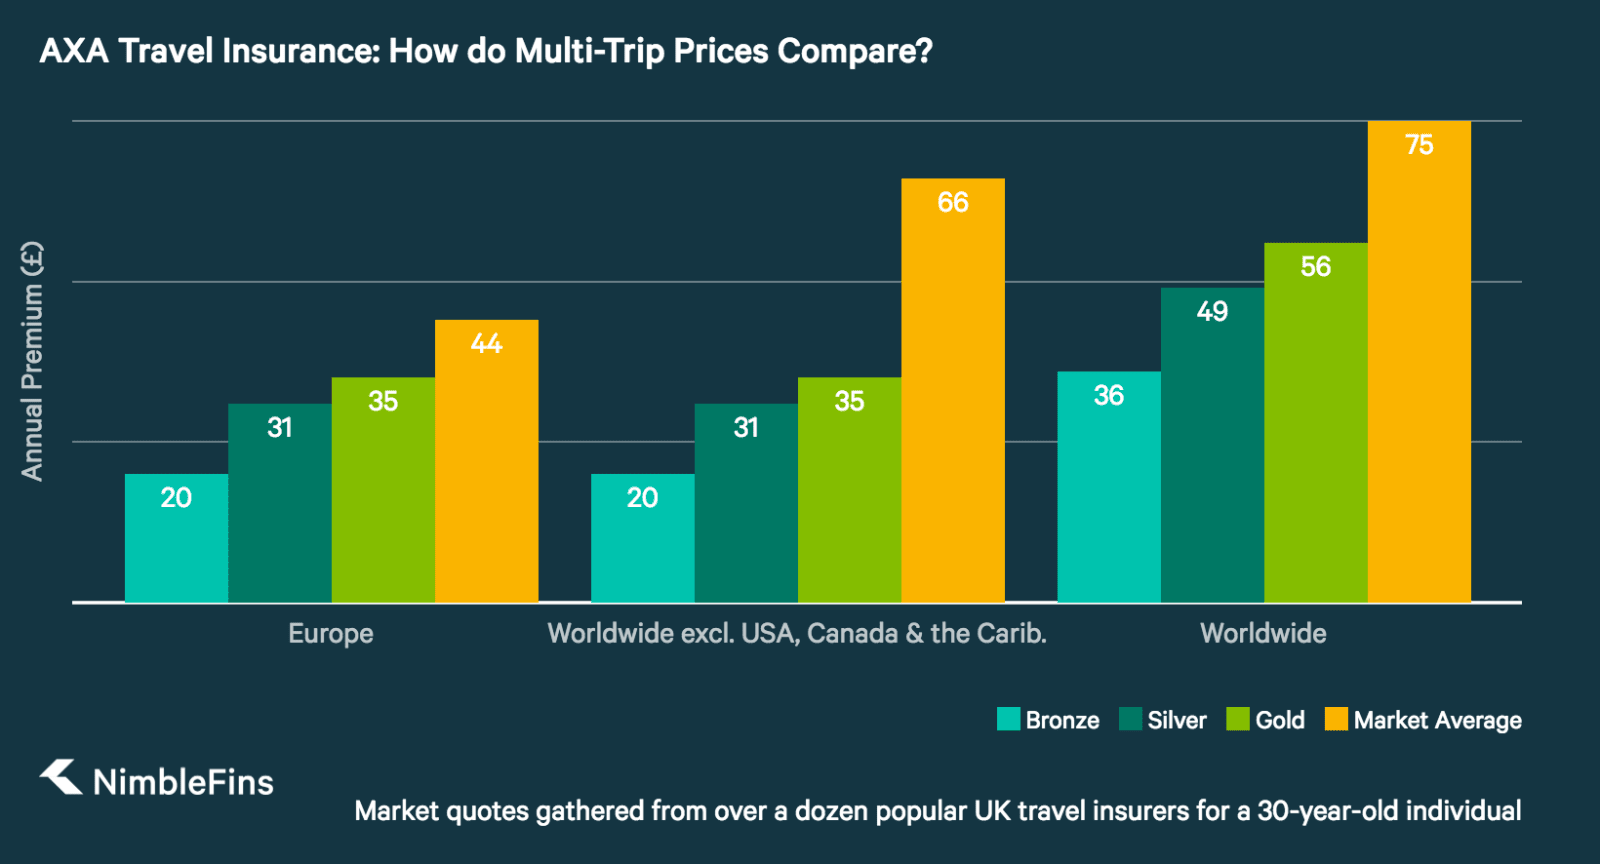 chart showing AXA multi-trip travel insurance prices compared to market averages